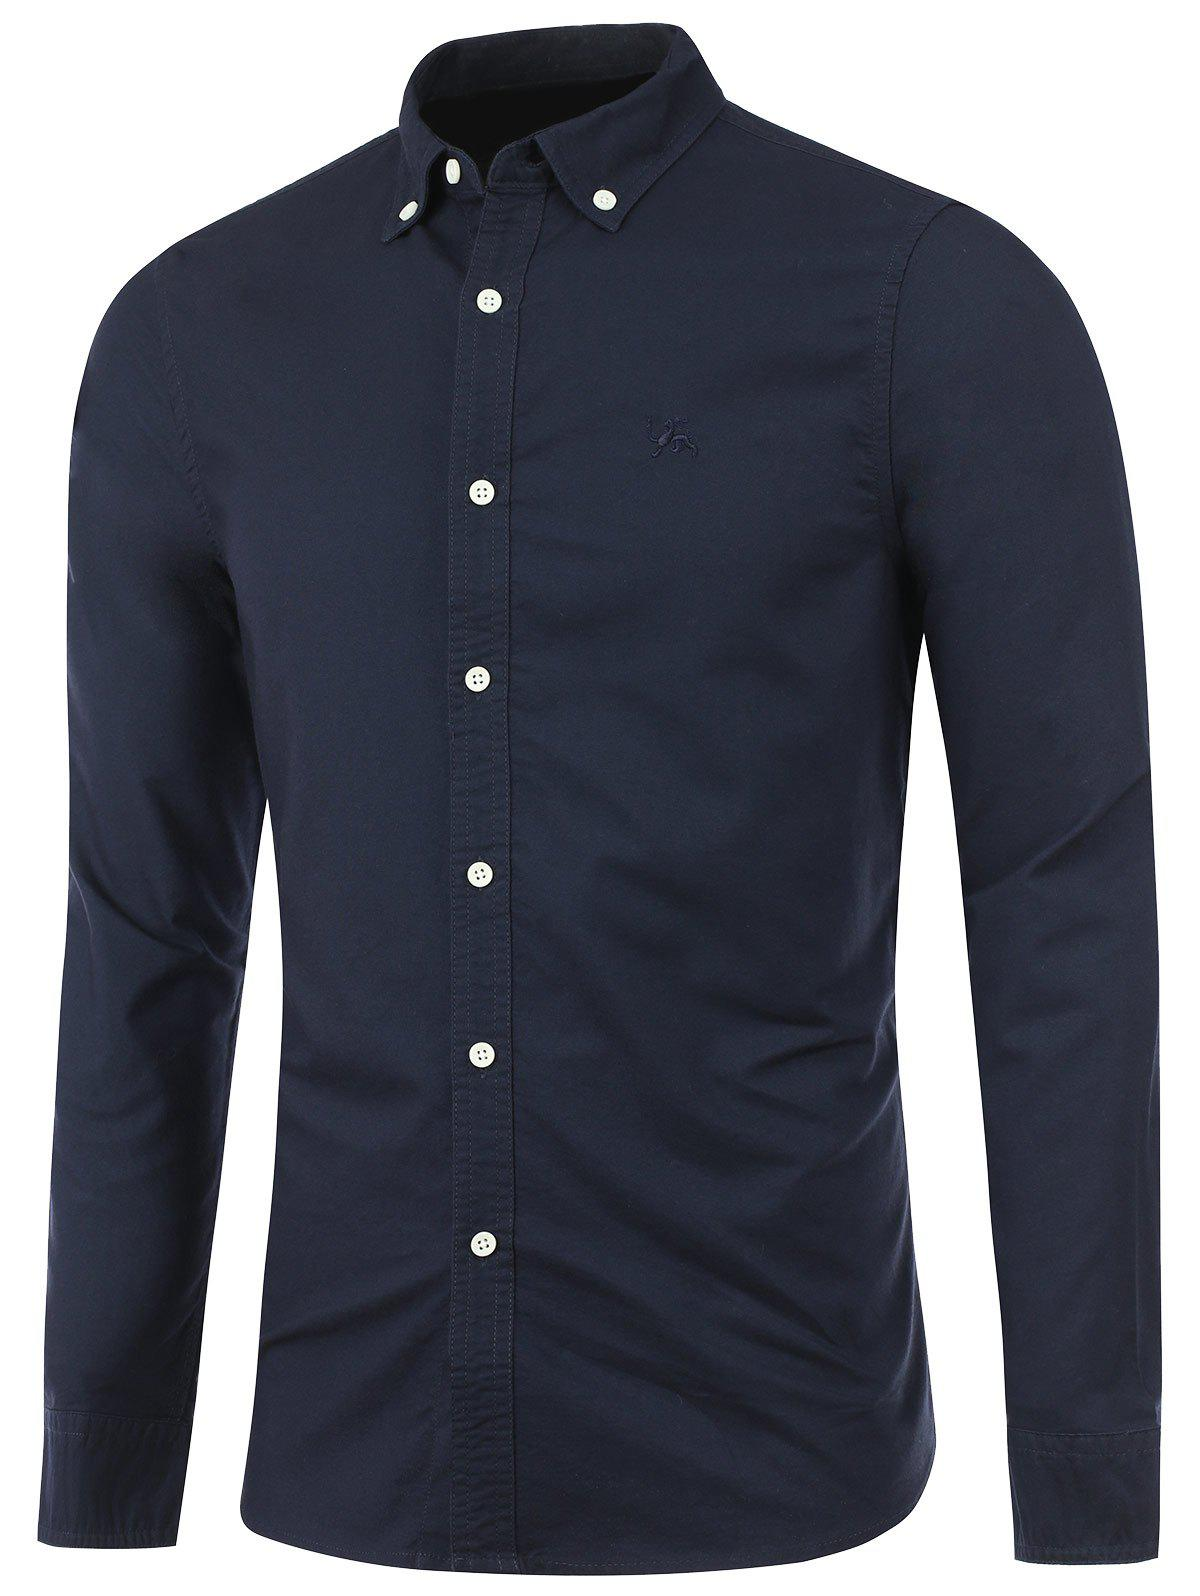 Long Sleeves Embroidered Button Down Shirt - CADETBLUE XL